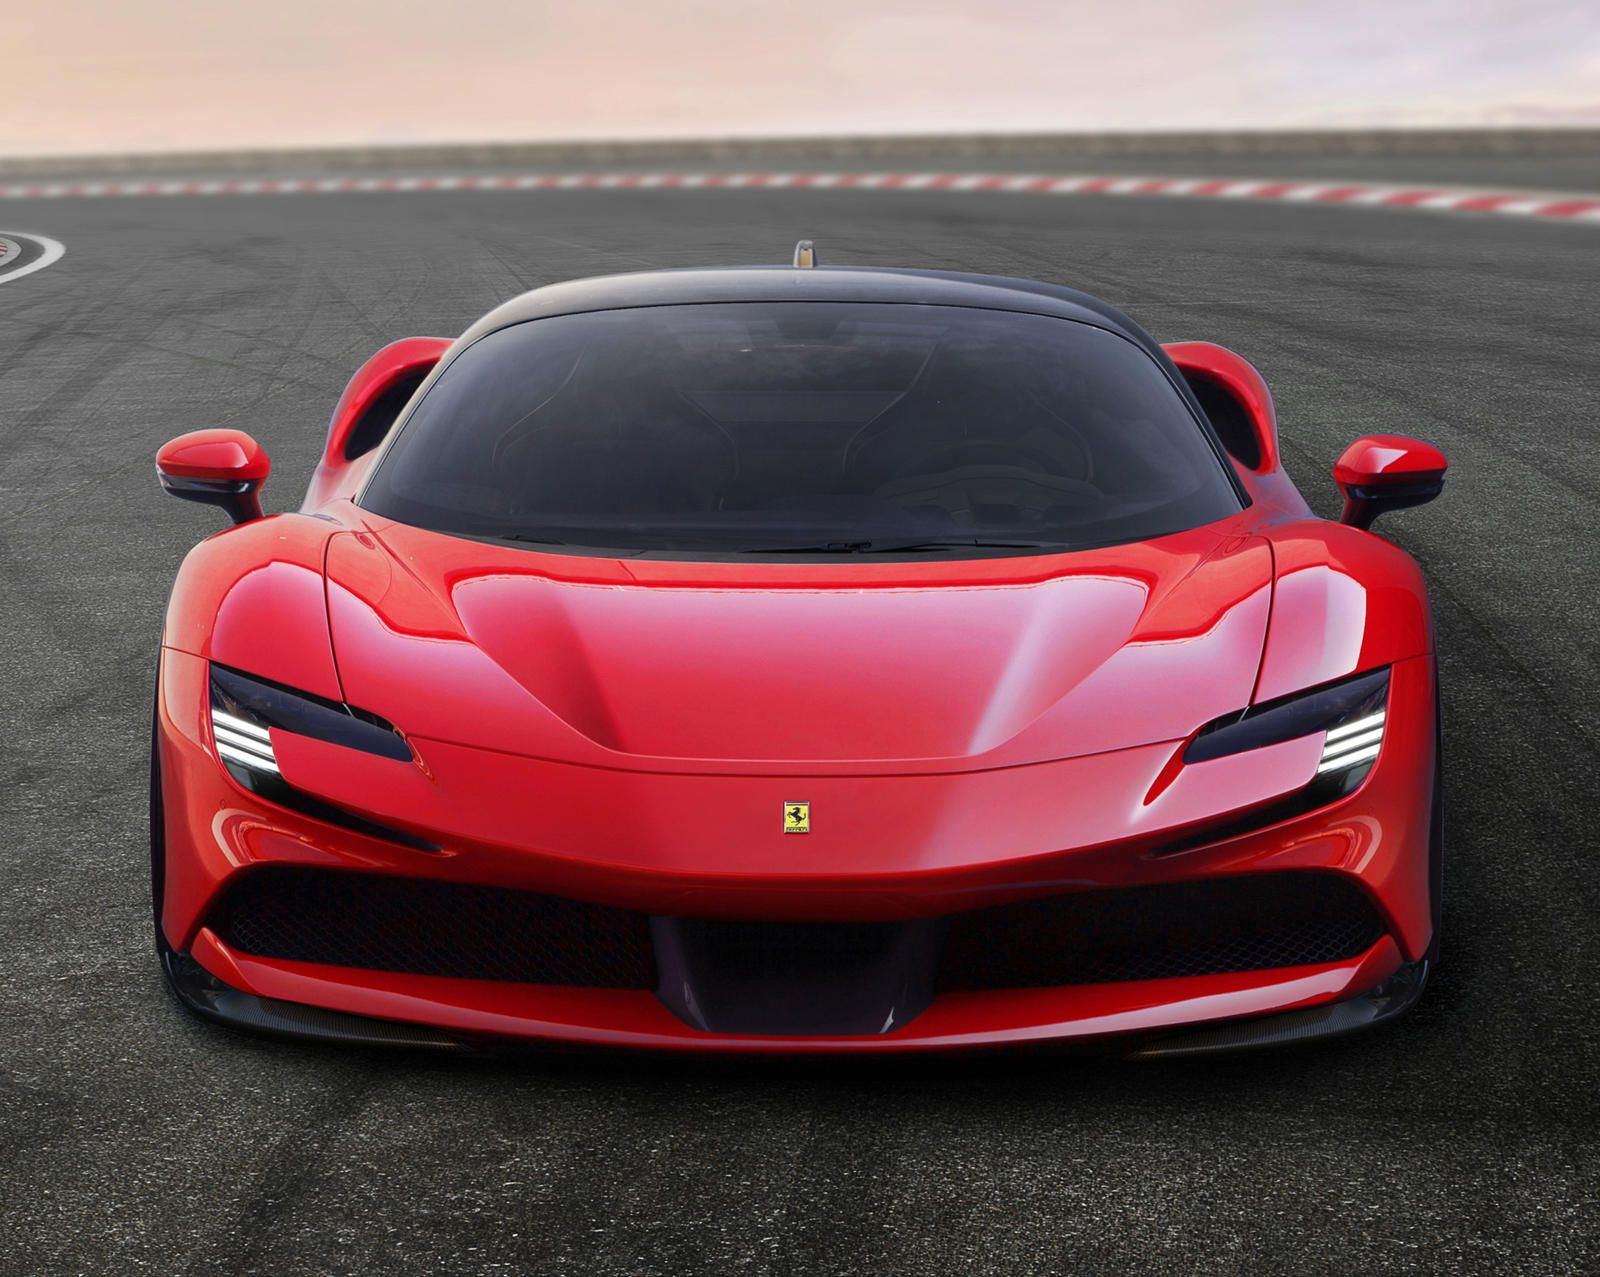 Ferrari Reminds The World Why It Builds The Best Supercars Today S Example The Sf90 Stradale In 2020 New Ferrari Super Cars Hybrid Car